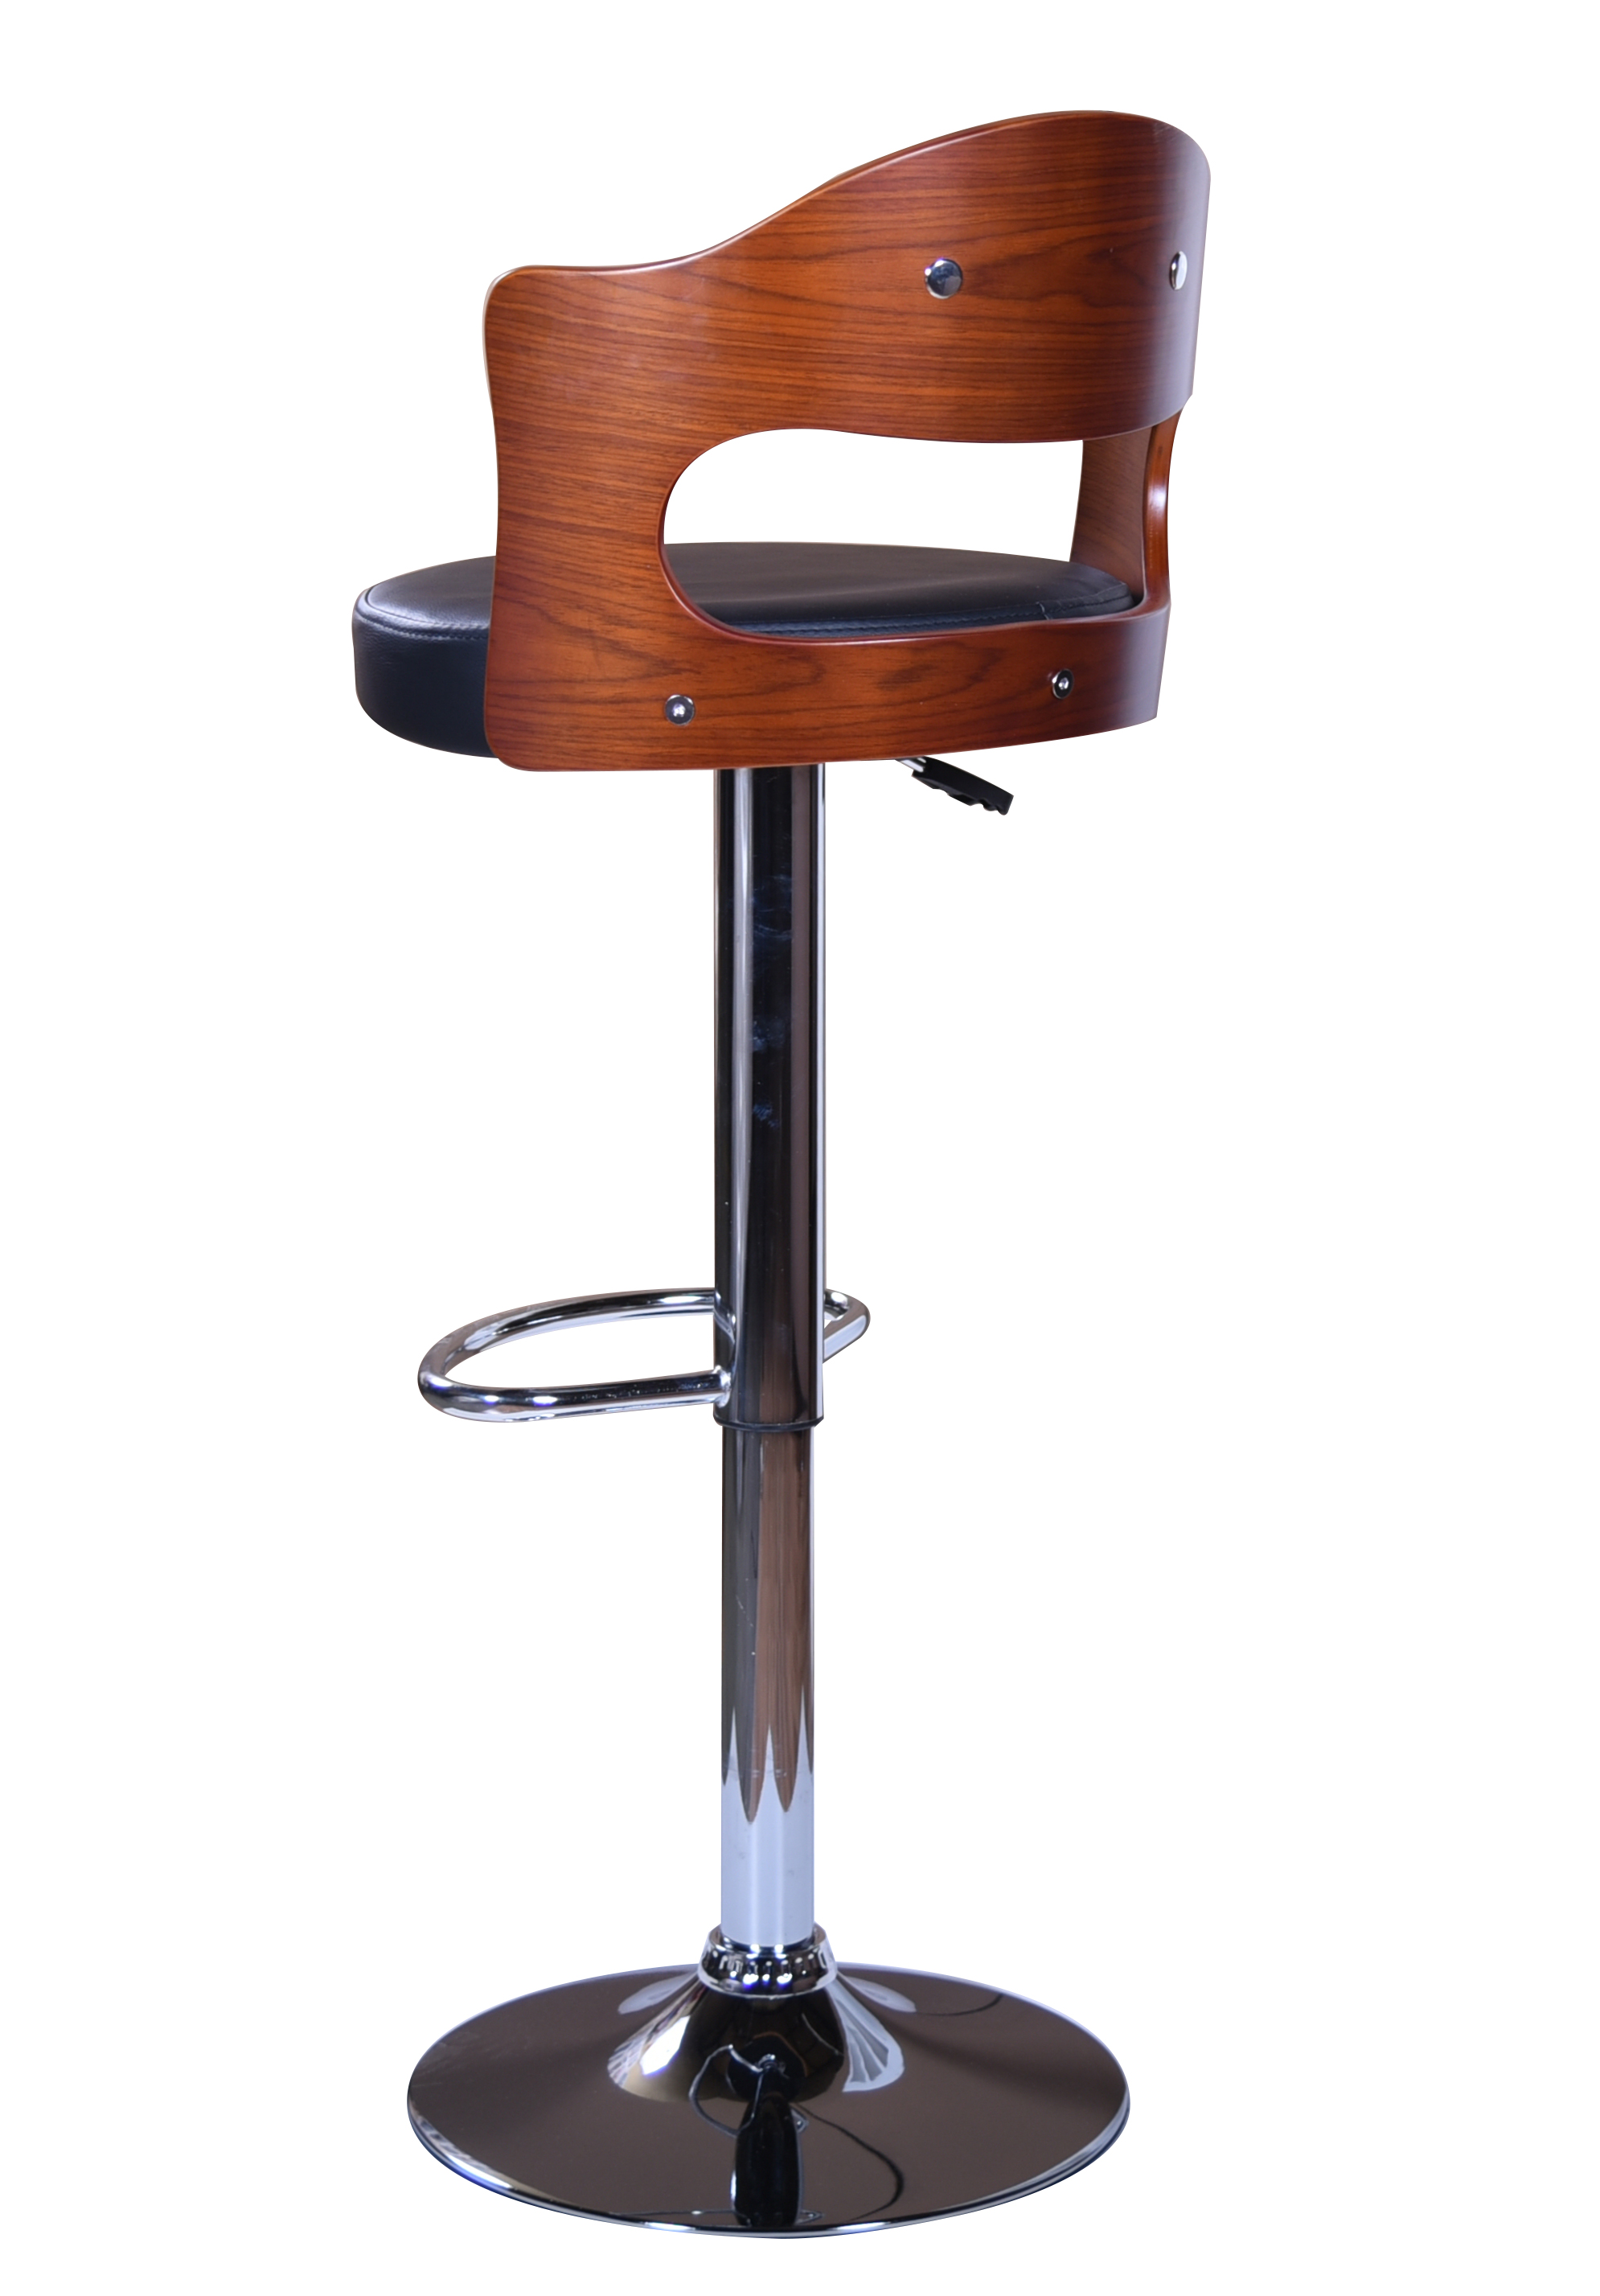 Bar Stools for sale Cheapest on Bar Stools Sameday  : Y 25 BAR STOOL from www.discountdecor.co.za size 1990 x 2855 jpeg 769kB